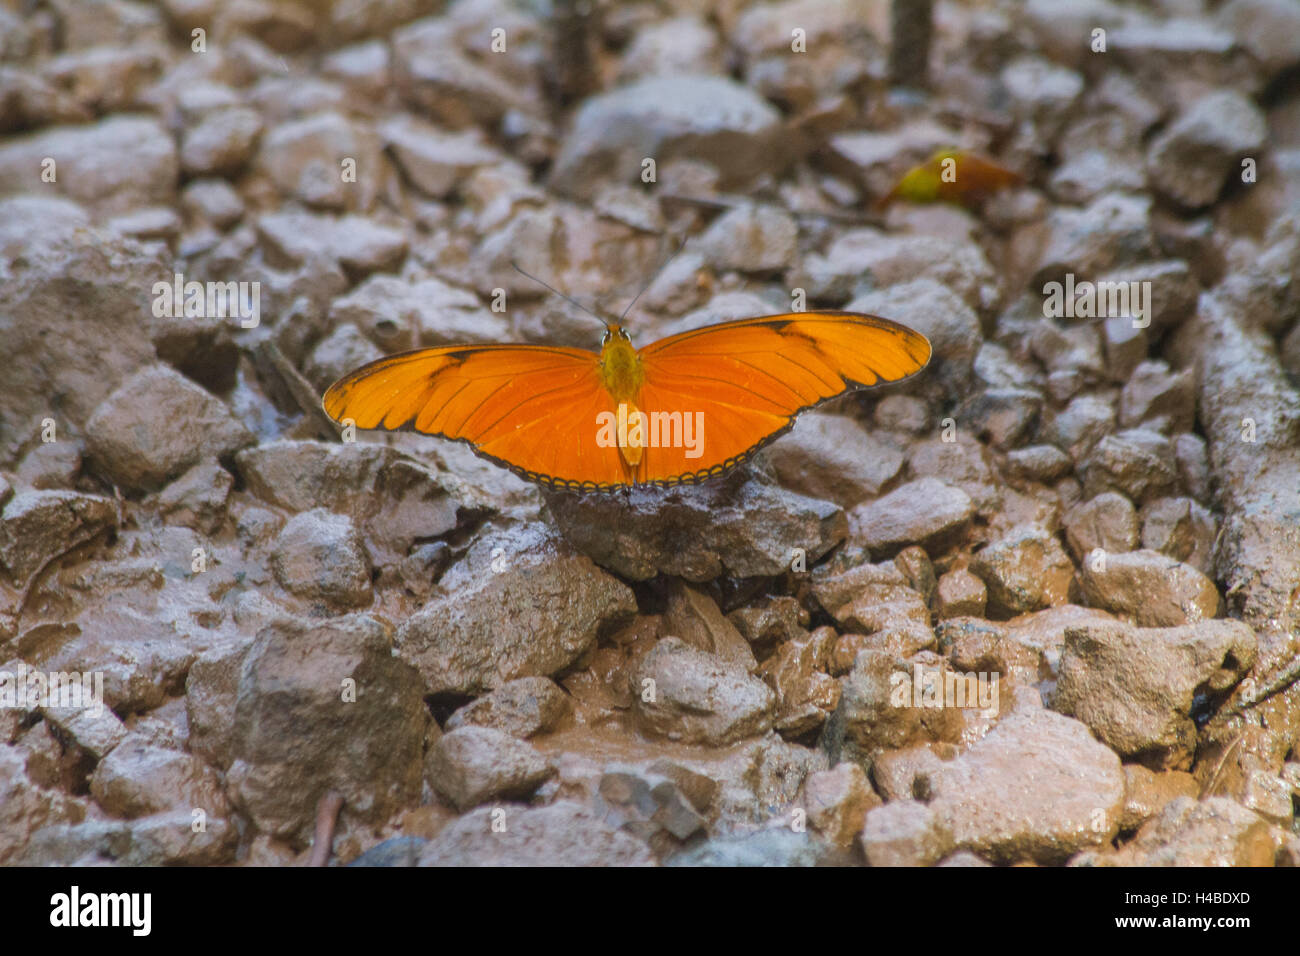 orange butterfly in the shore sludge - Stock Image